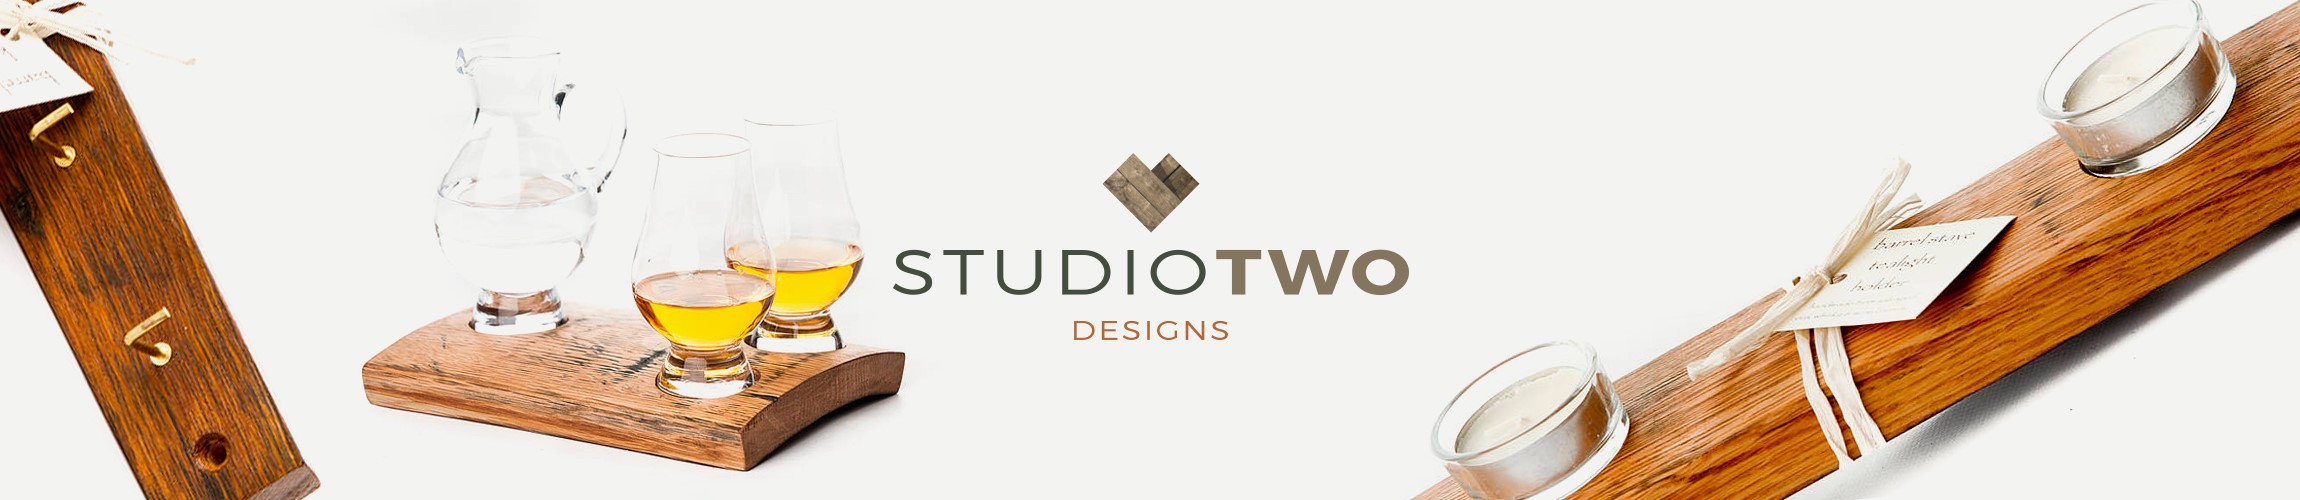 Handmade Wood Gifts from StudioTwo Designs